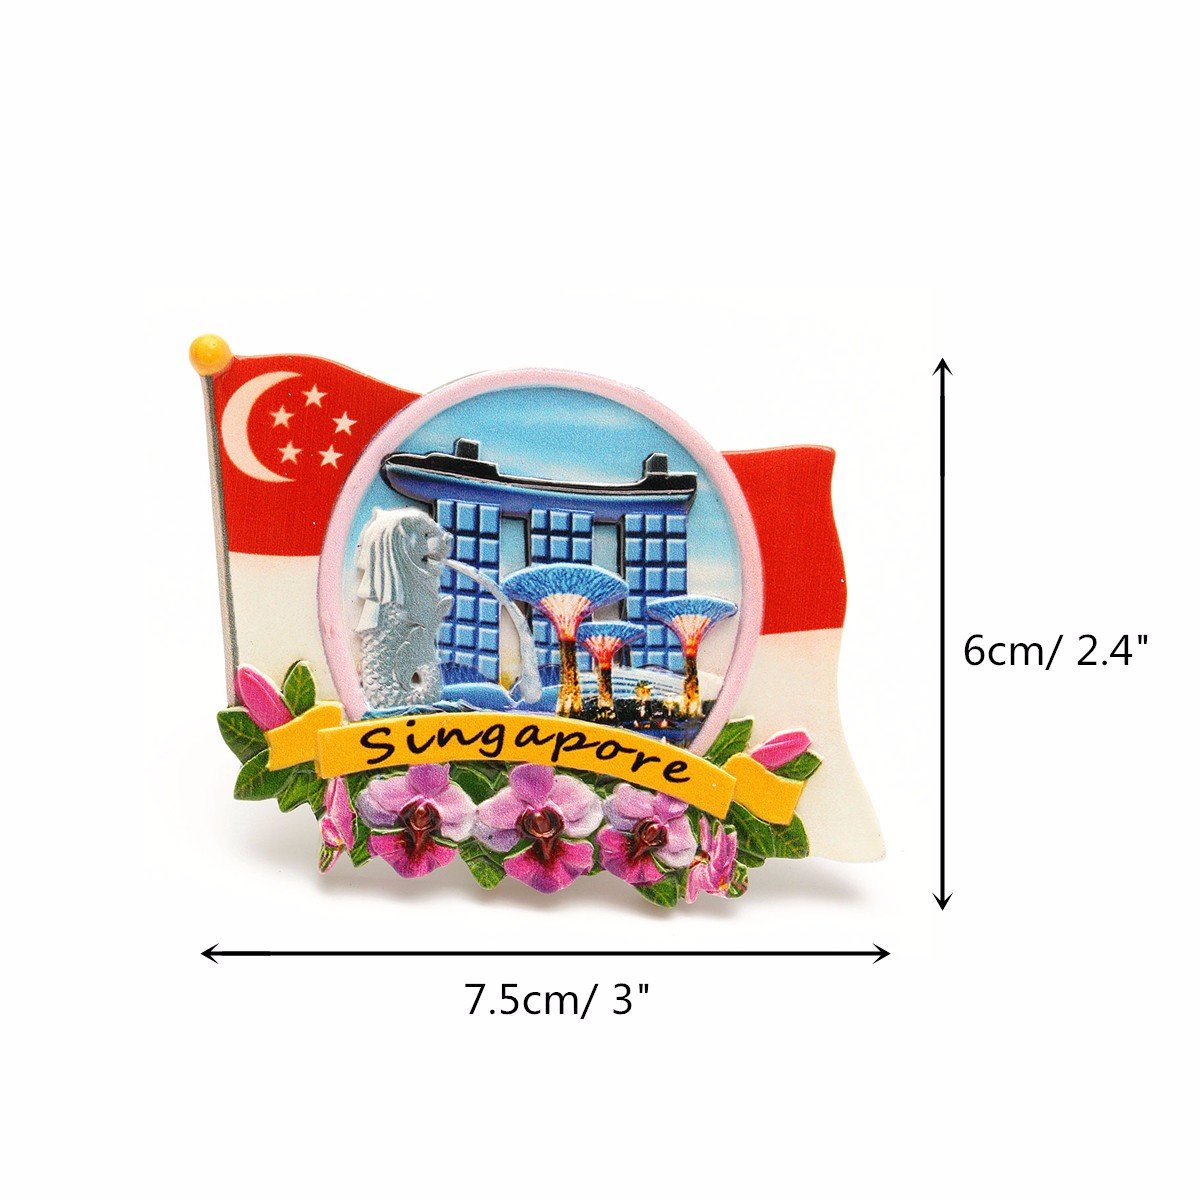 Tourist Souvenir Favorite Travel Resin 3D Fridge Magnet Colorful-Singapore - Photo: 5